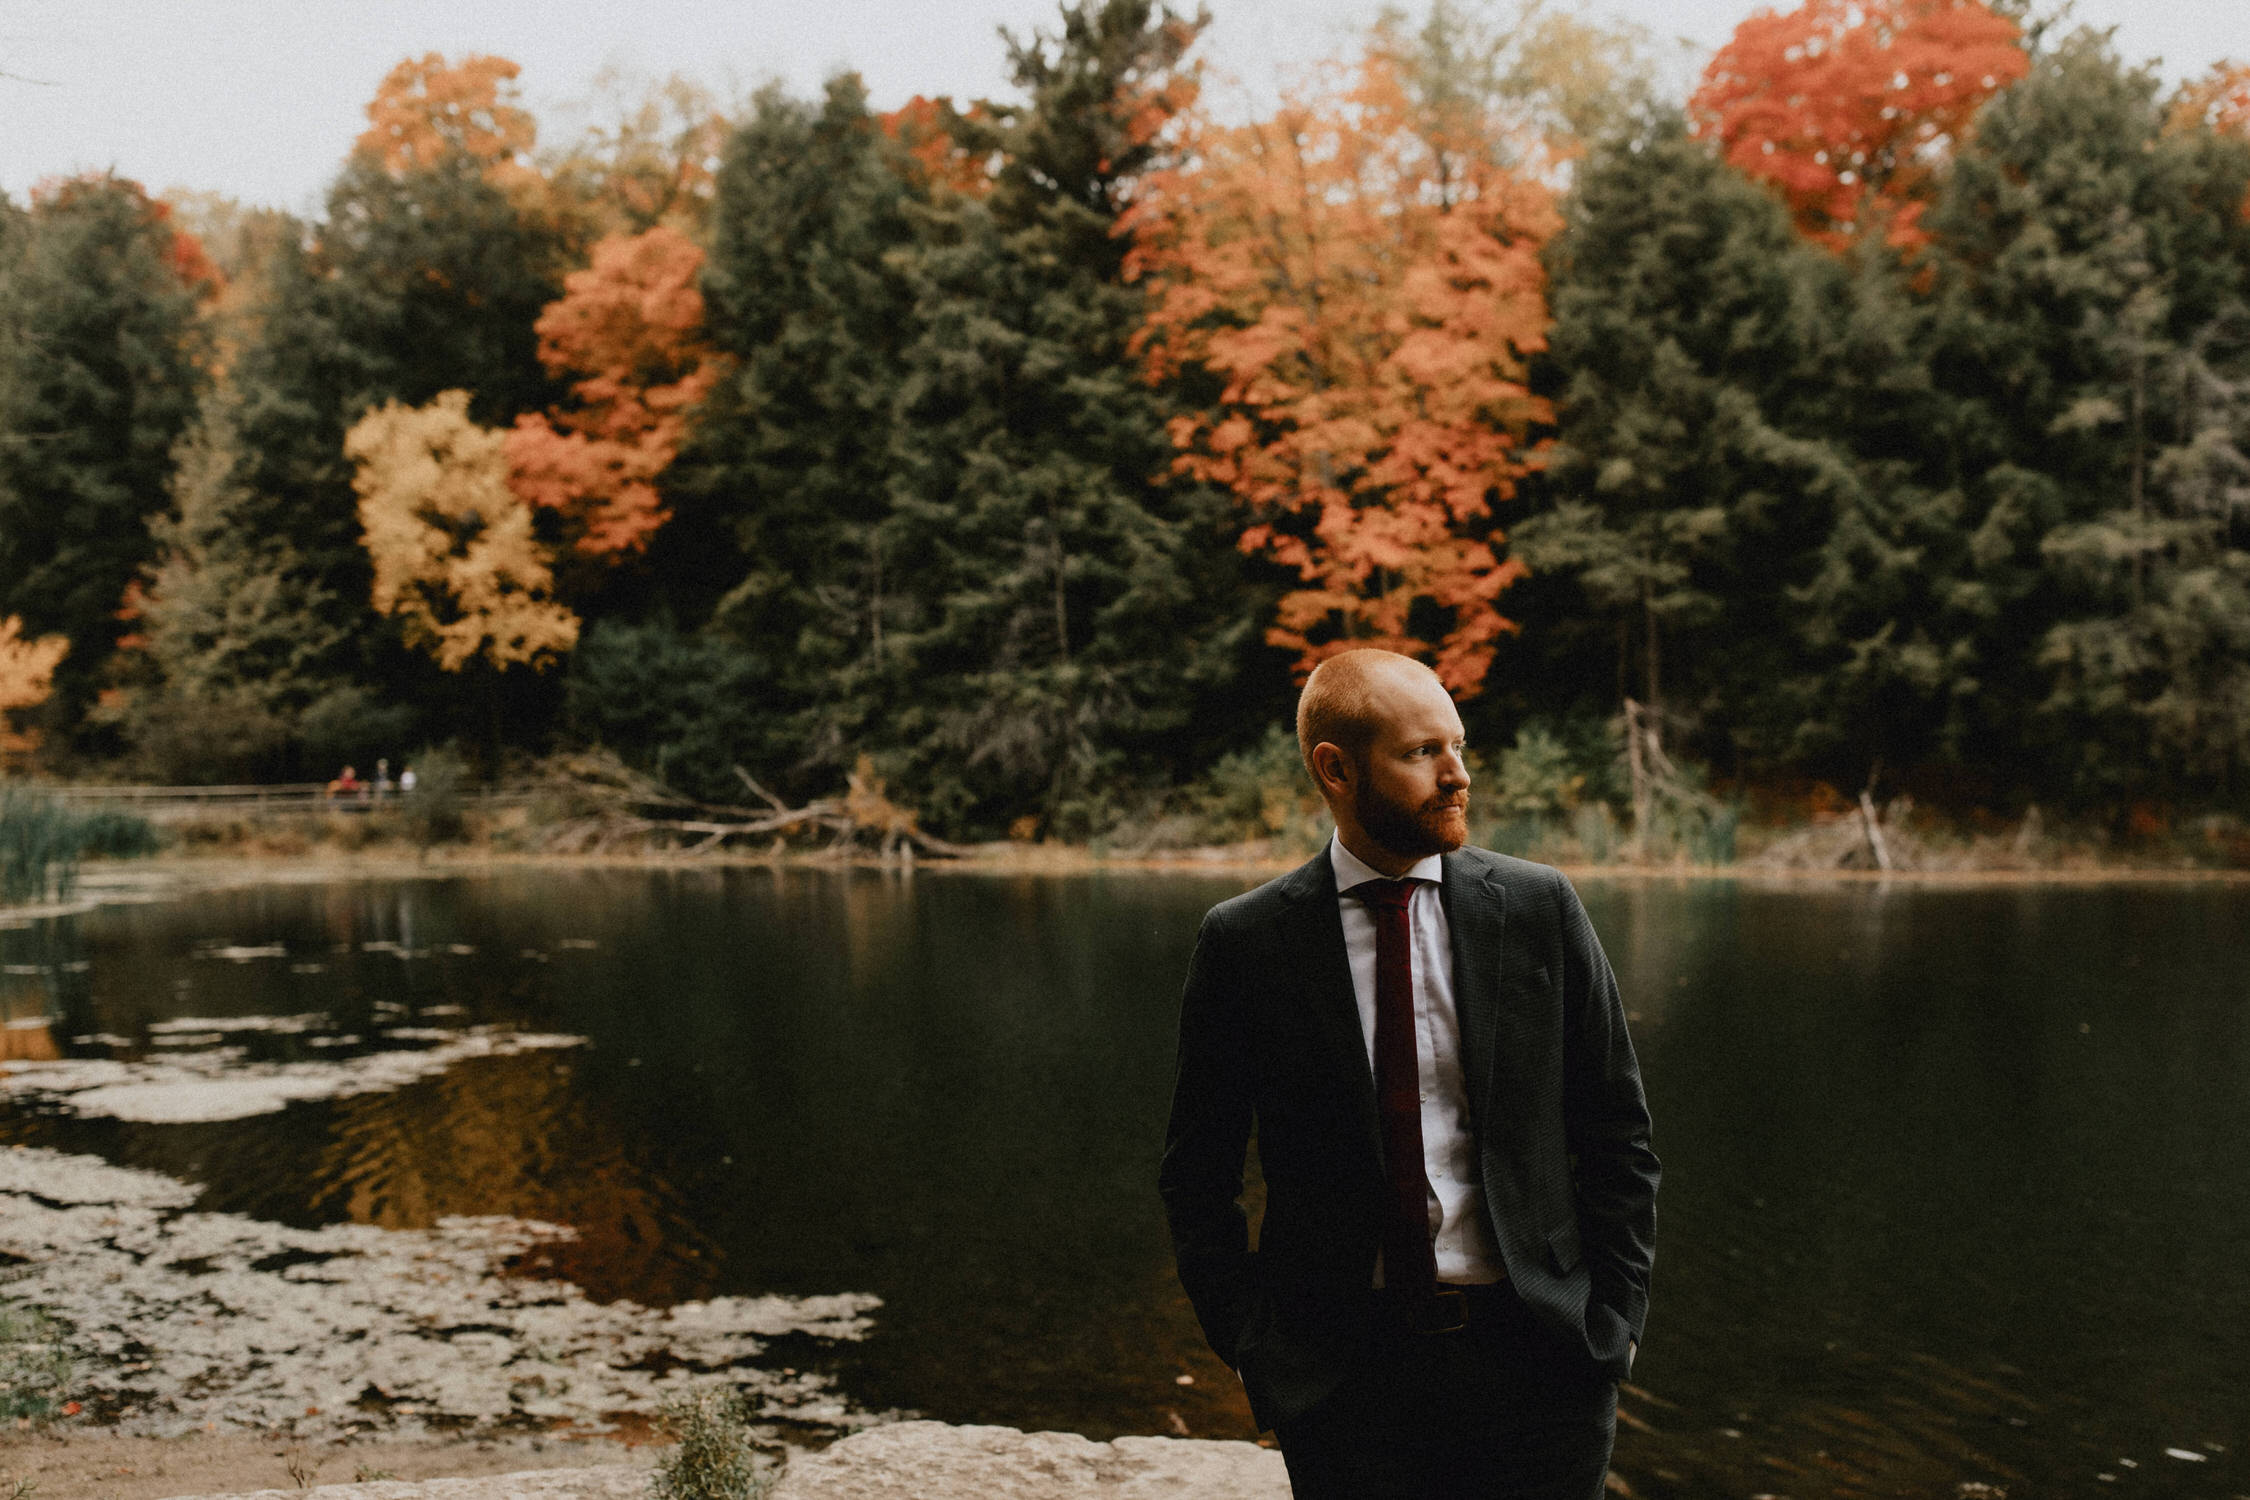 Groom near pond and fall trees - Huron Natural Area Micro Wedding Kitchener, Ontario